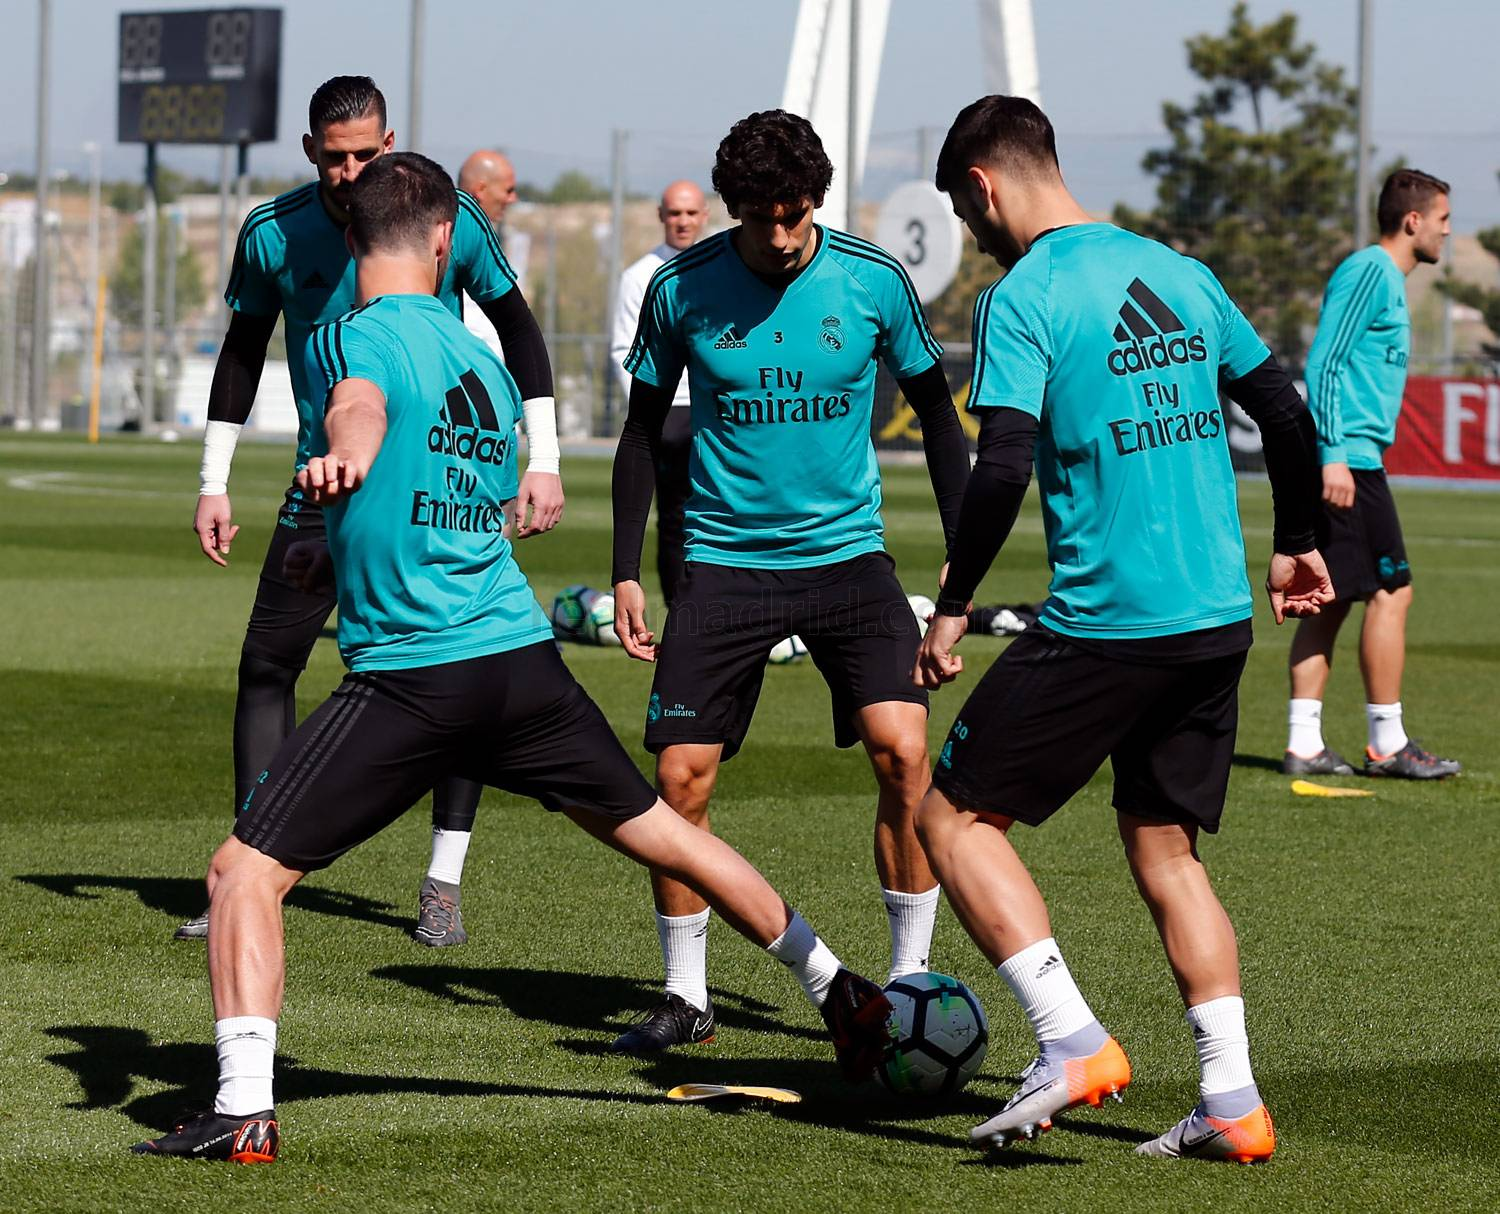 Real Madrid - Entrenamiento del Real Madrid - 05-05-2018